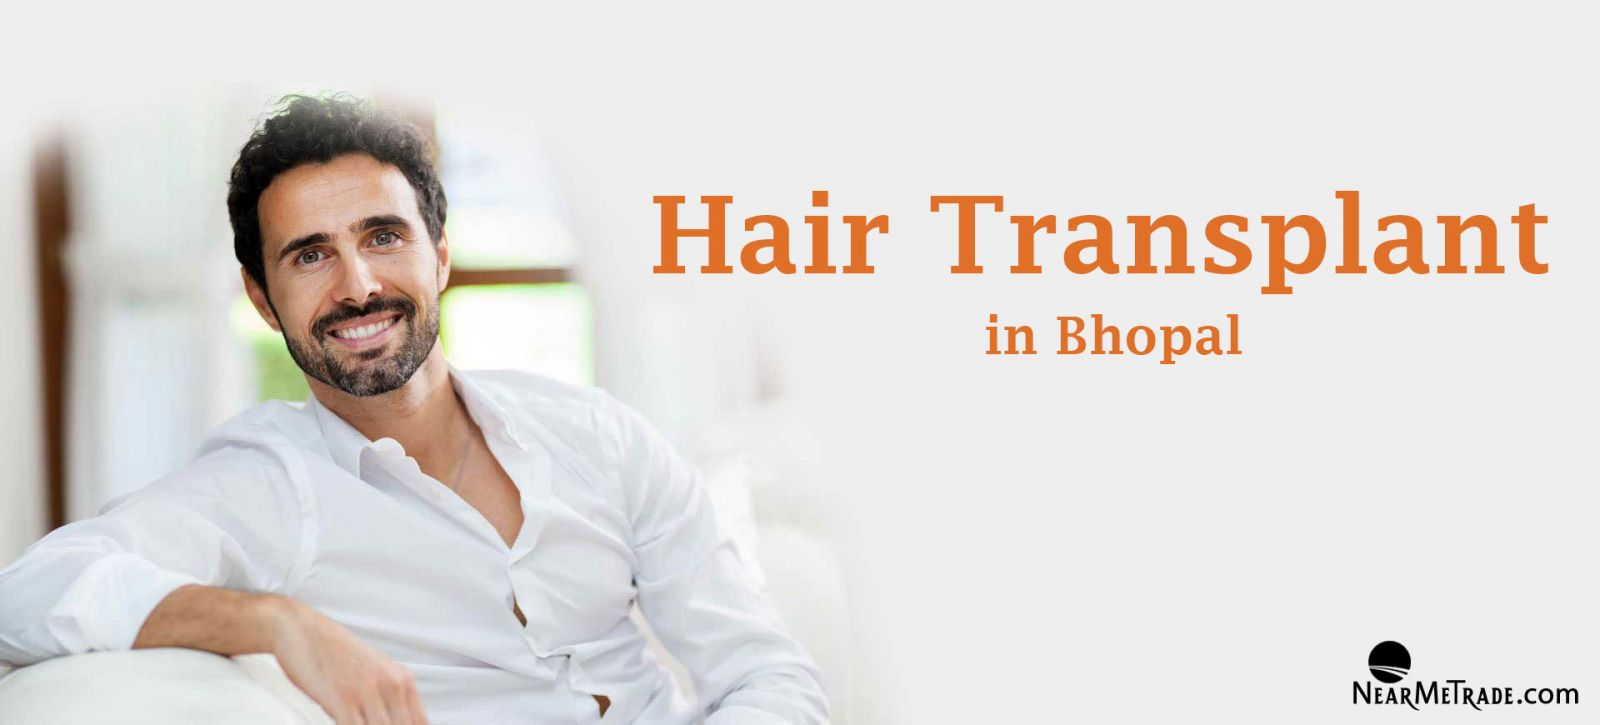 Hair Transplant in Bhopal